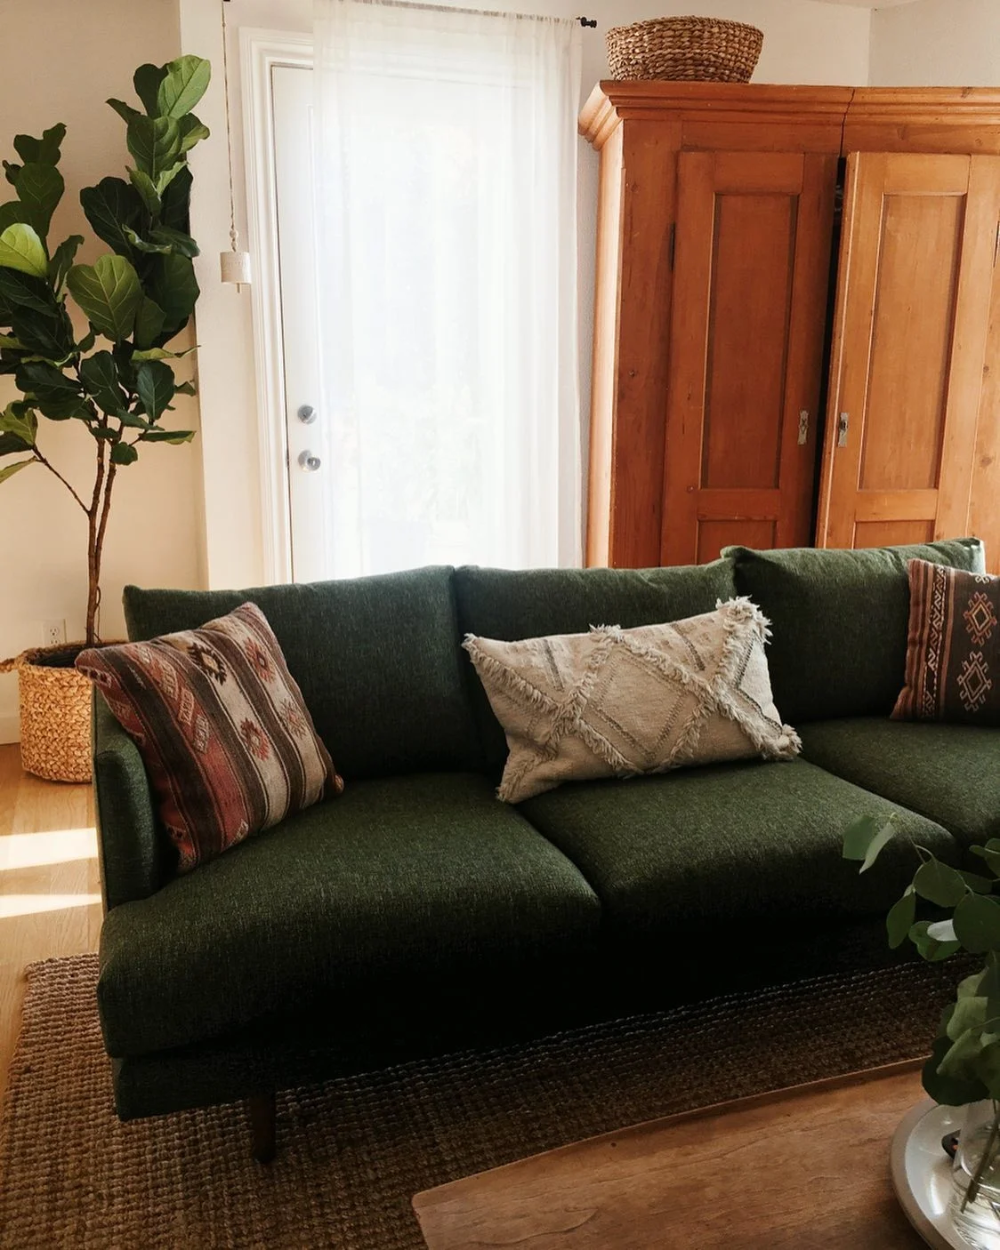 Burrard Forest Green Sofa Green Couch Living Room Living Room Design Green Green Living Room Color Scheme #olive #green #couch #living #room